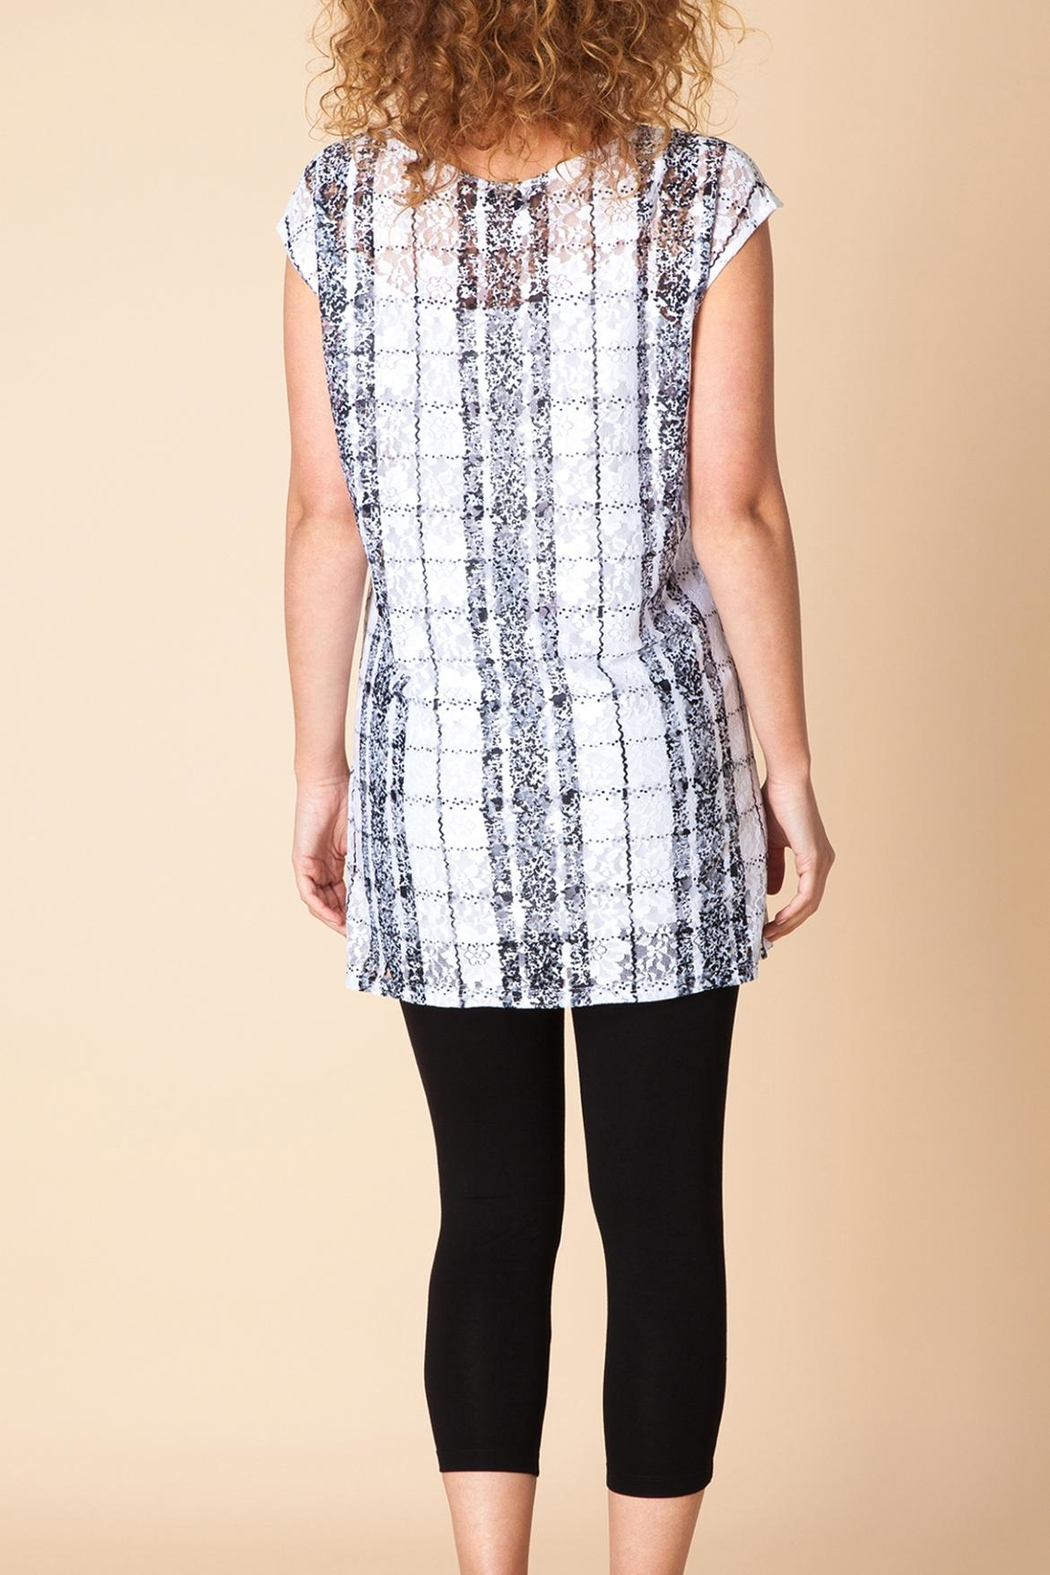 Yest Geometric Lace Top - Side Cropped Image